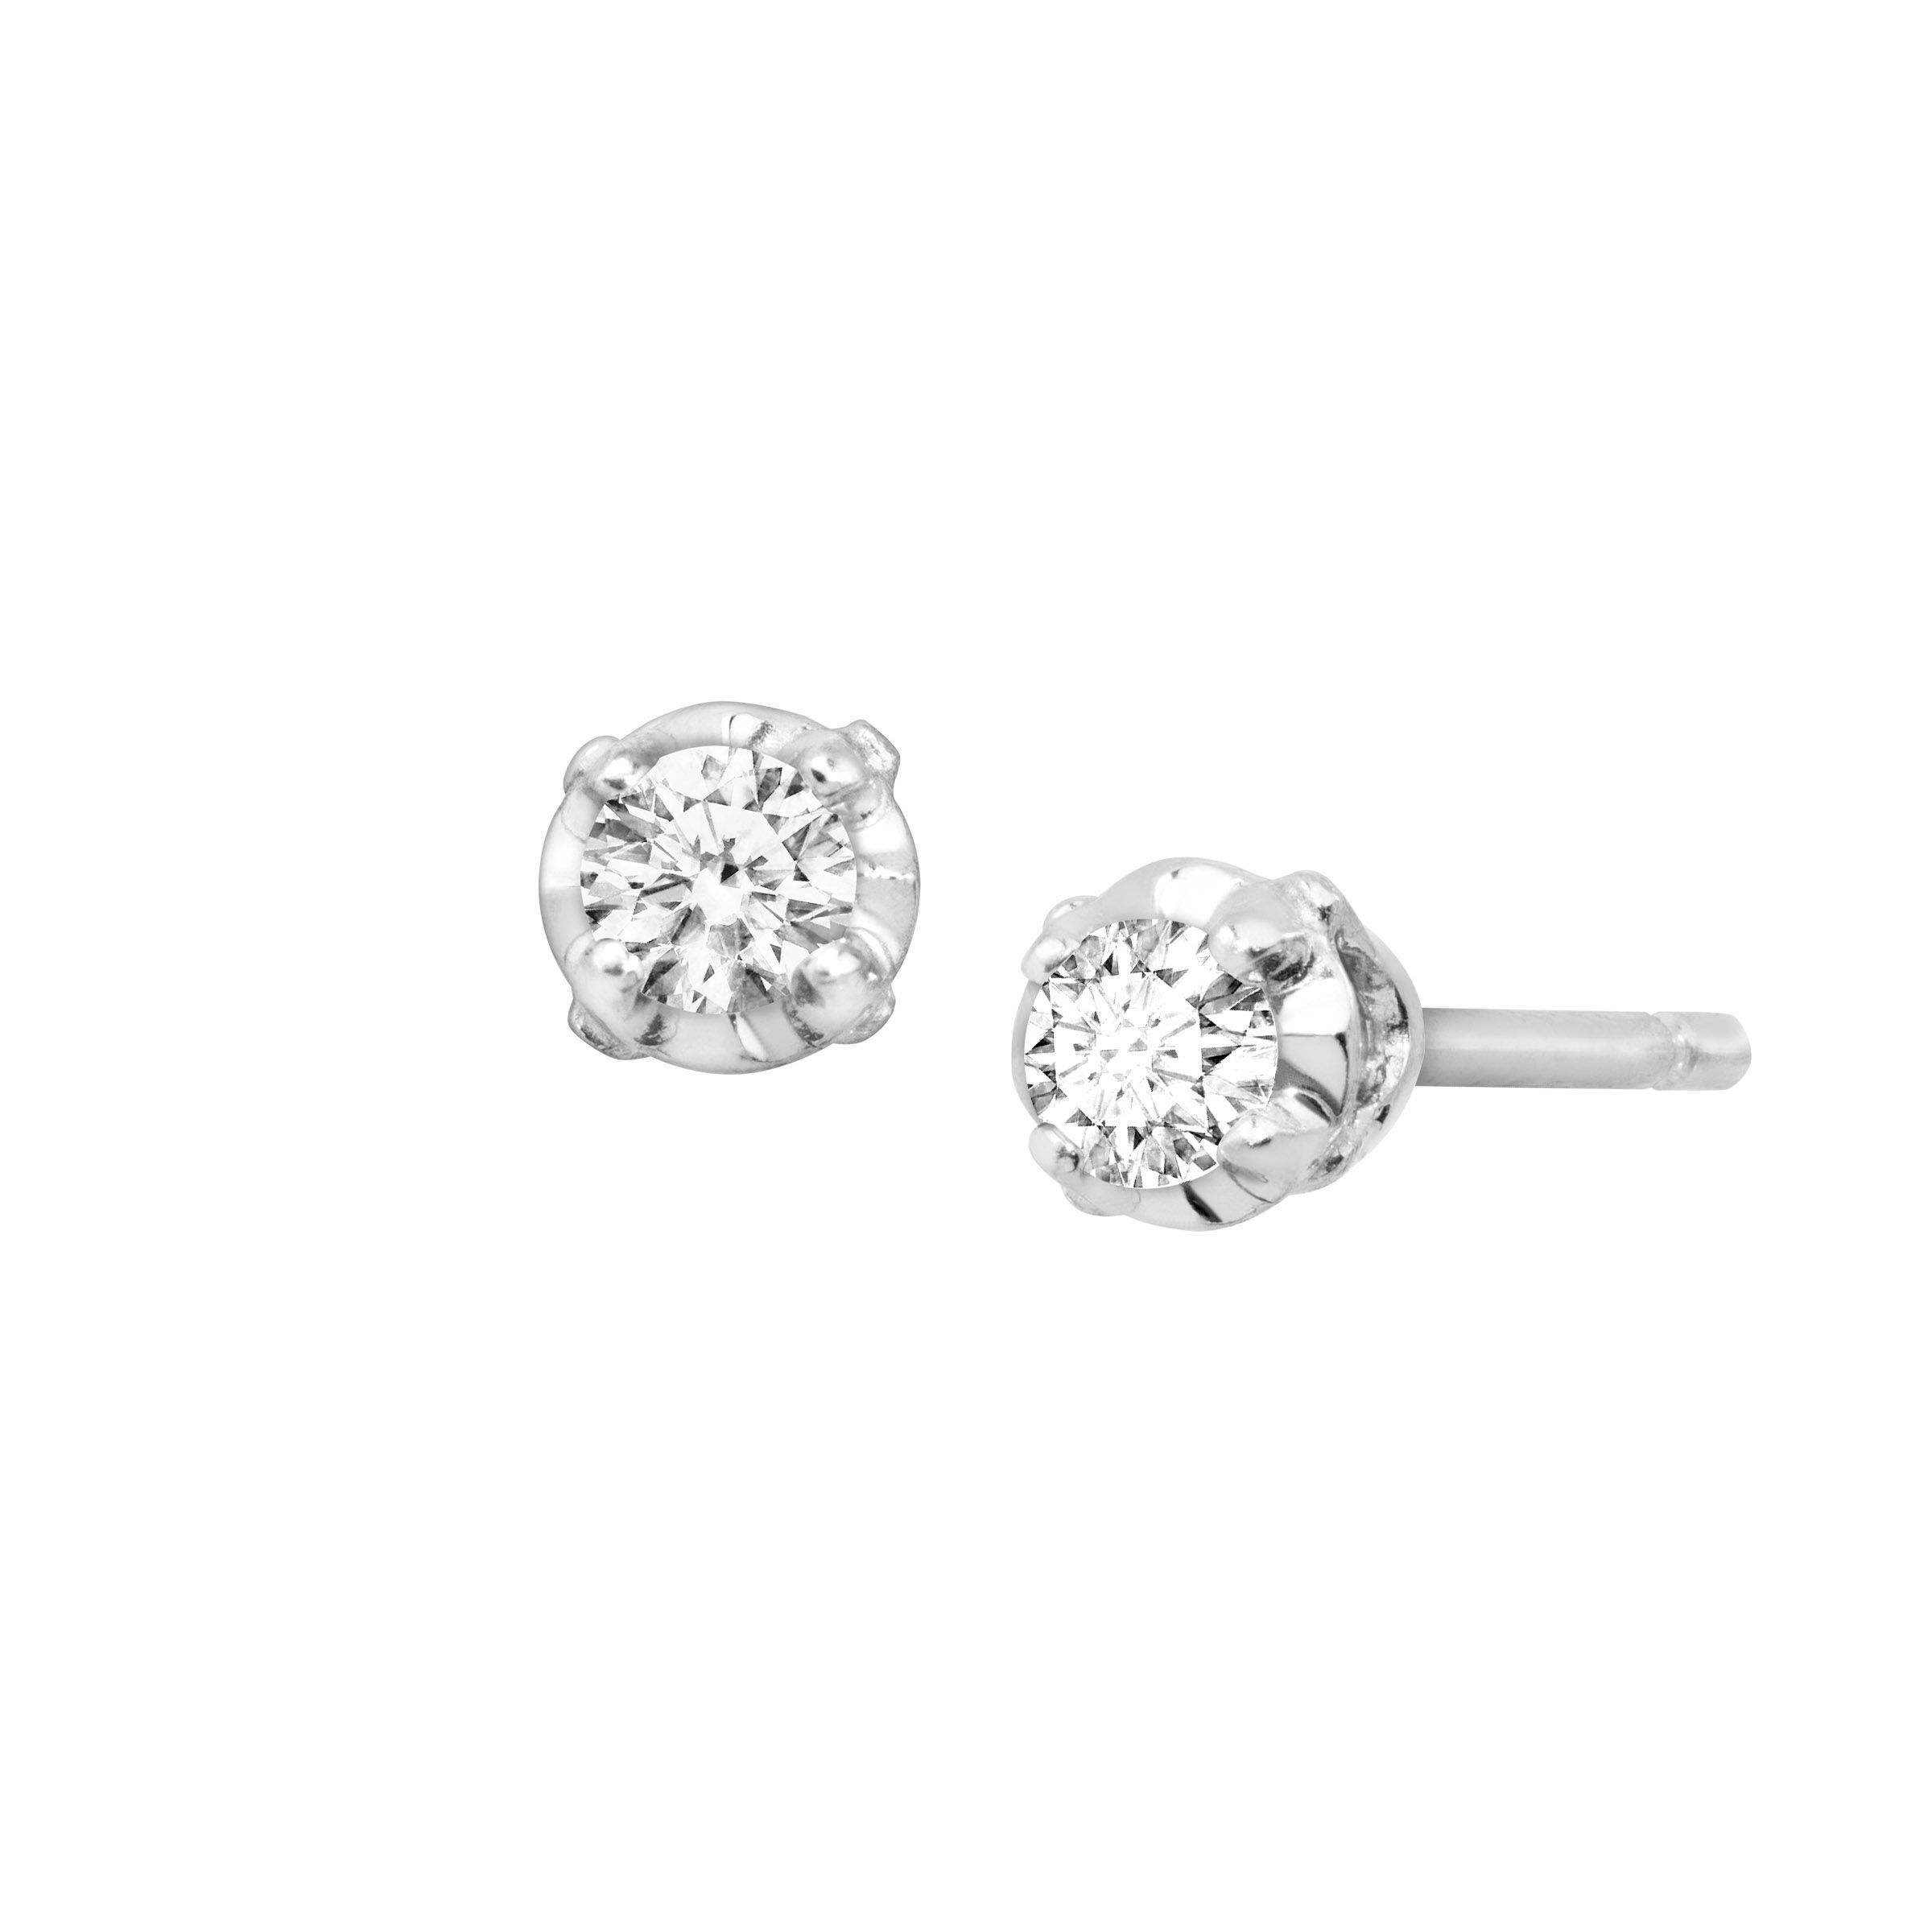 earrings online nyr christie s stud jewels jewellery christies diamond